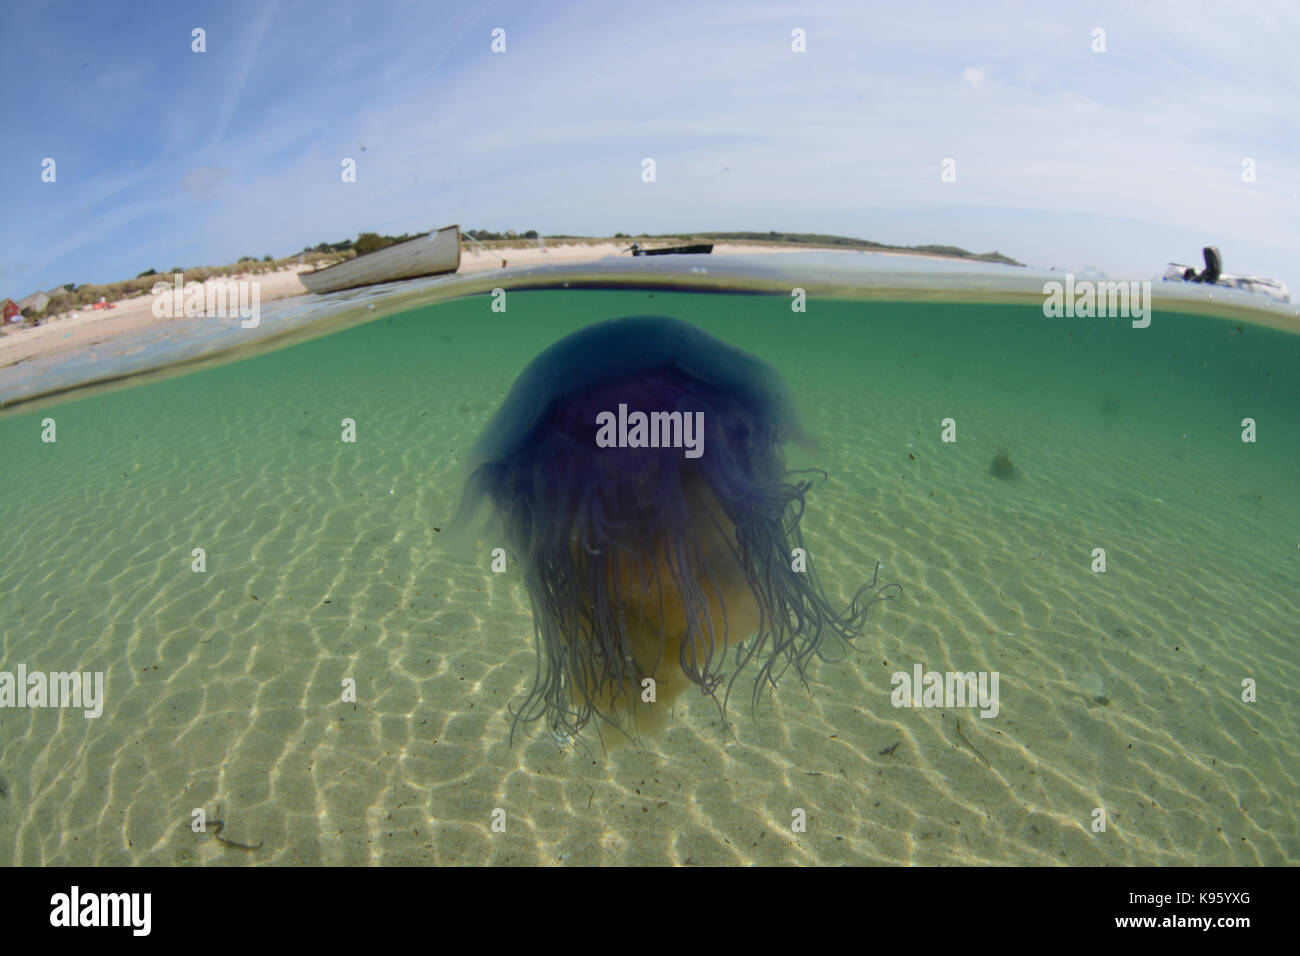 Split level shot of a blue jellyfish off a beach at St Martins, Isles of Scilly, UK - Stock Image